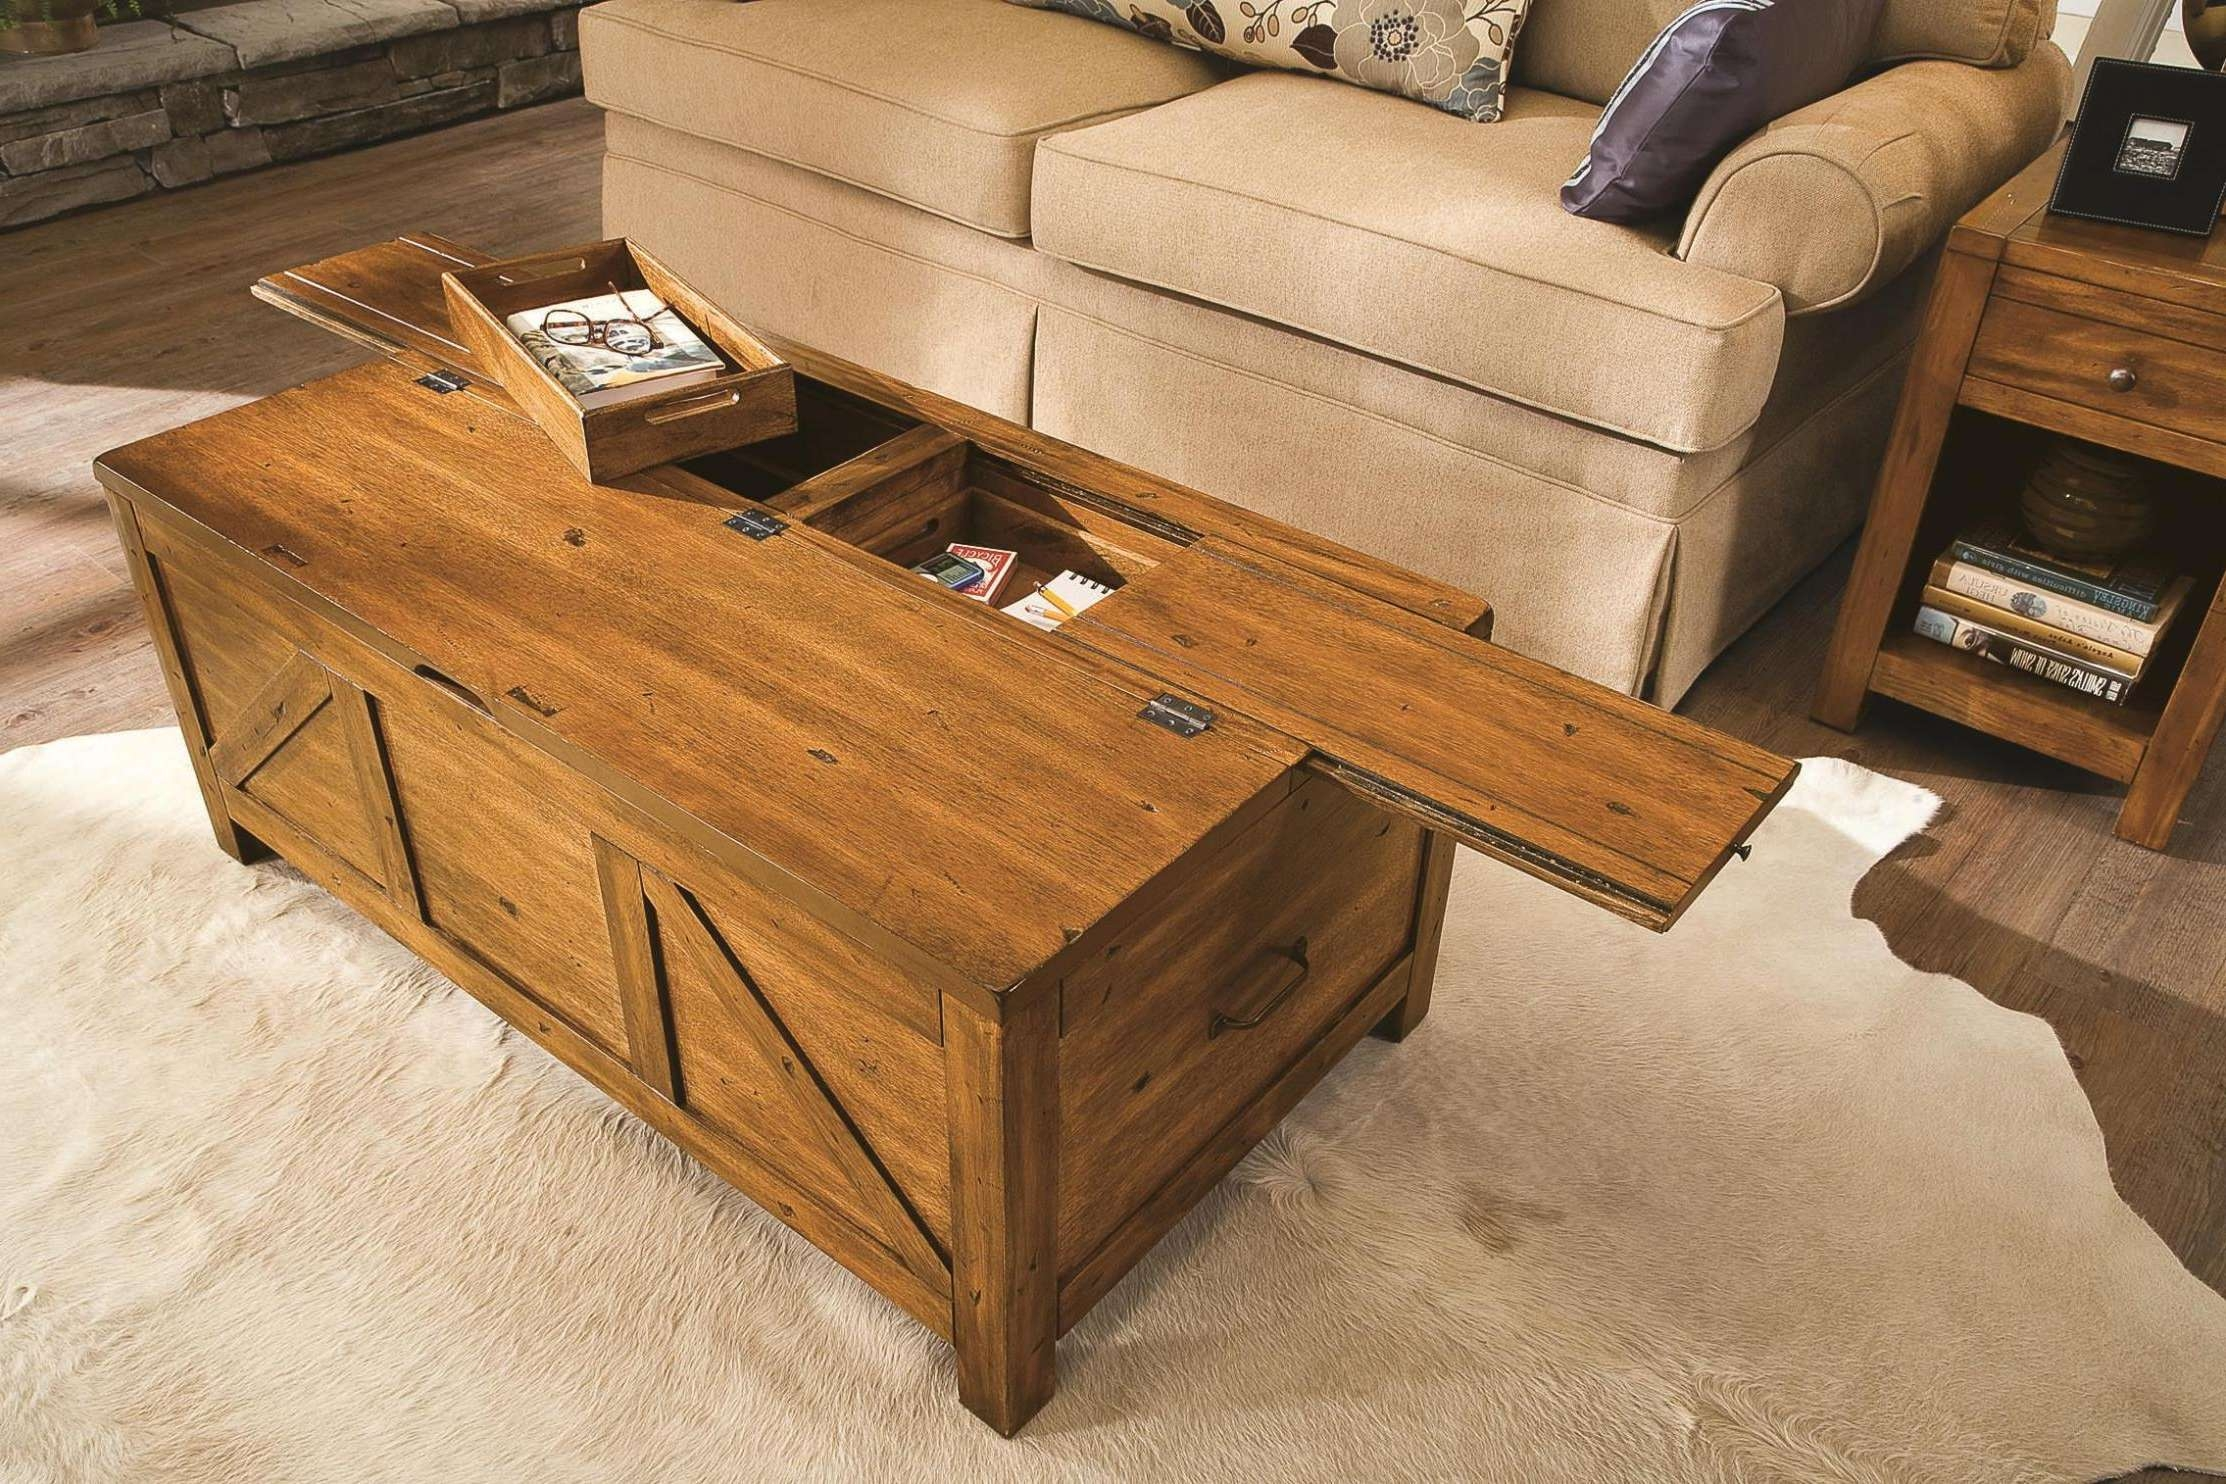 Coffee Tables : Square Coffee Table Large With Storage Oversized With Well Liked Large Coffee Tables With Storage (View 14 of 20)